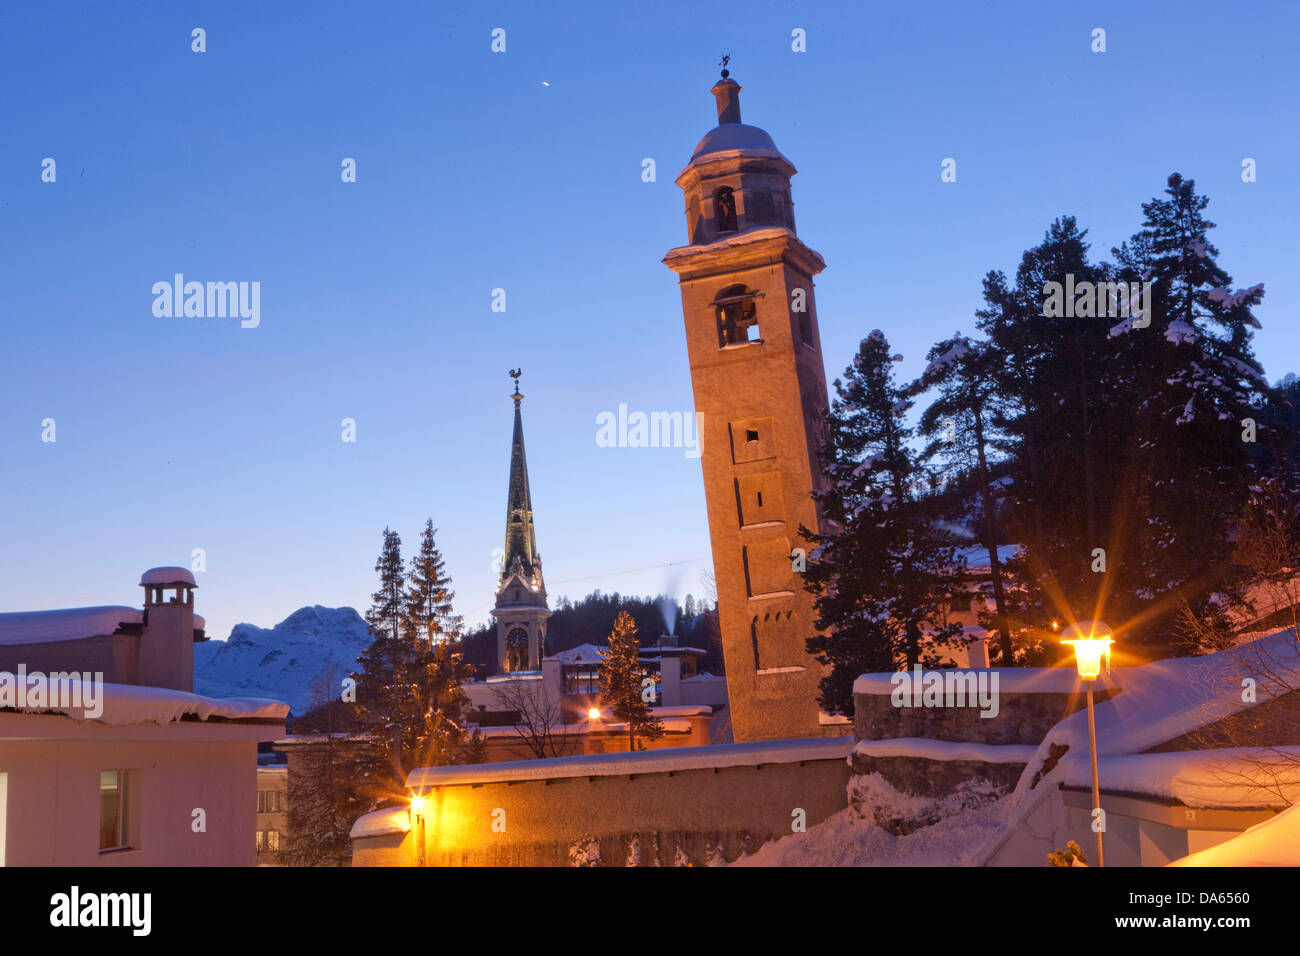 Saint Moritz, skew tower, rook, tower, church, religion, town, city, winter, canton, GR, Graubünden, Grisons, - Stock Image